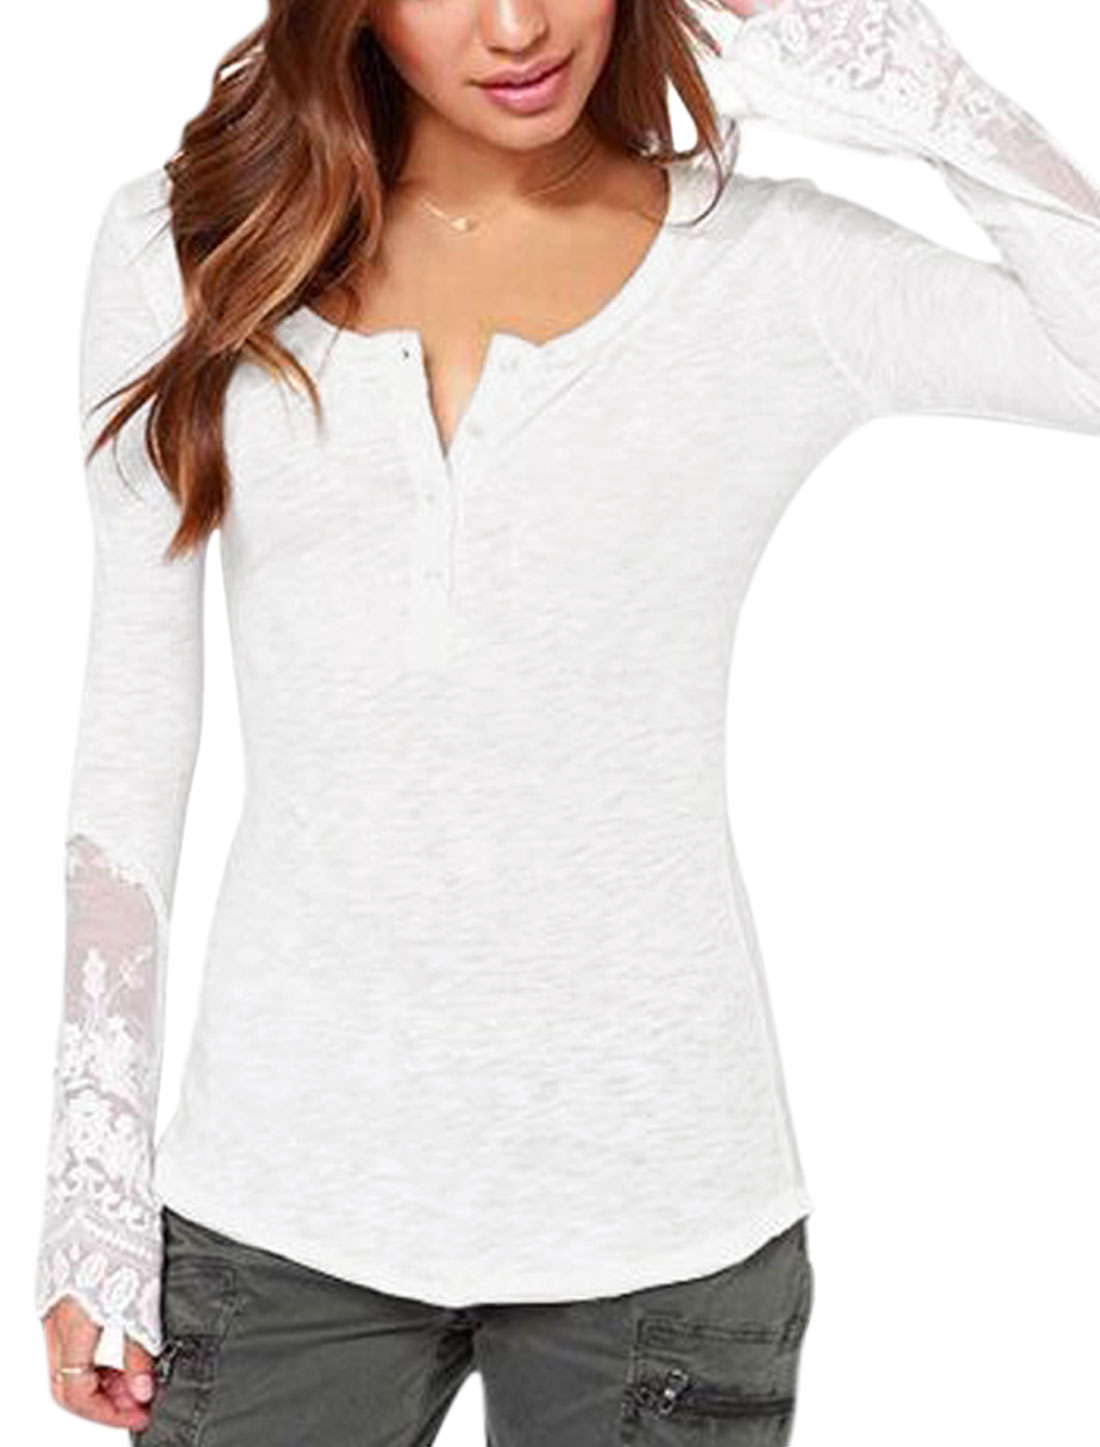 Women Y Neck Long Sleeves Lace Panel Casual Shirt White S